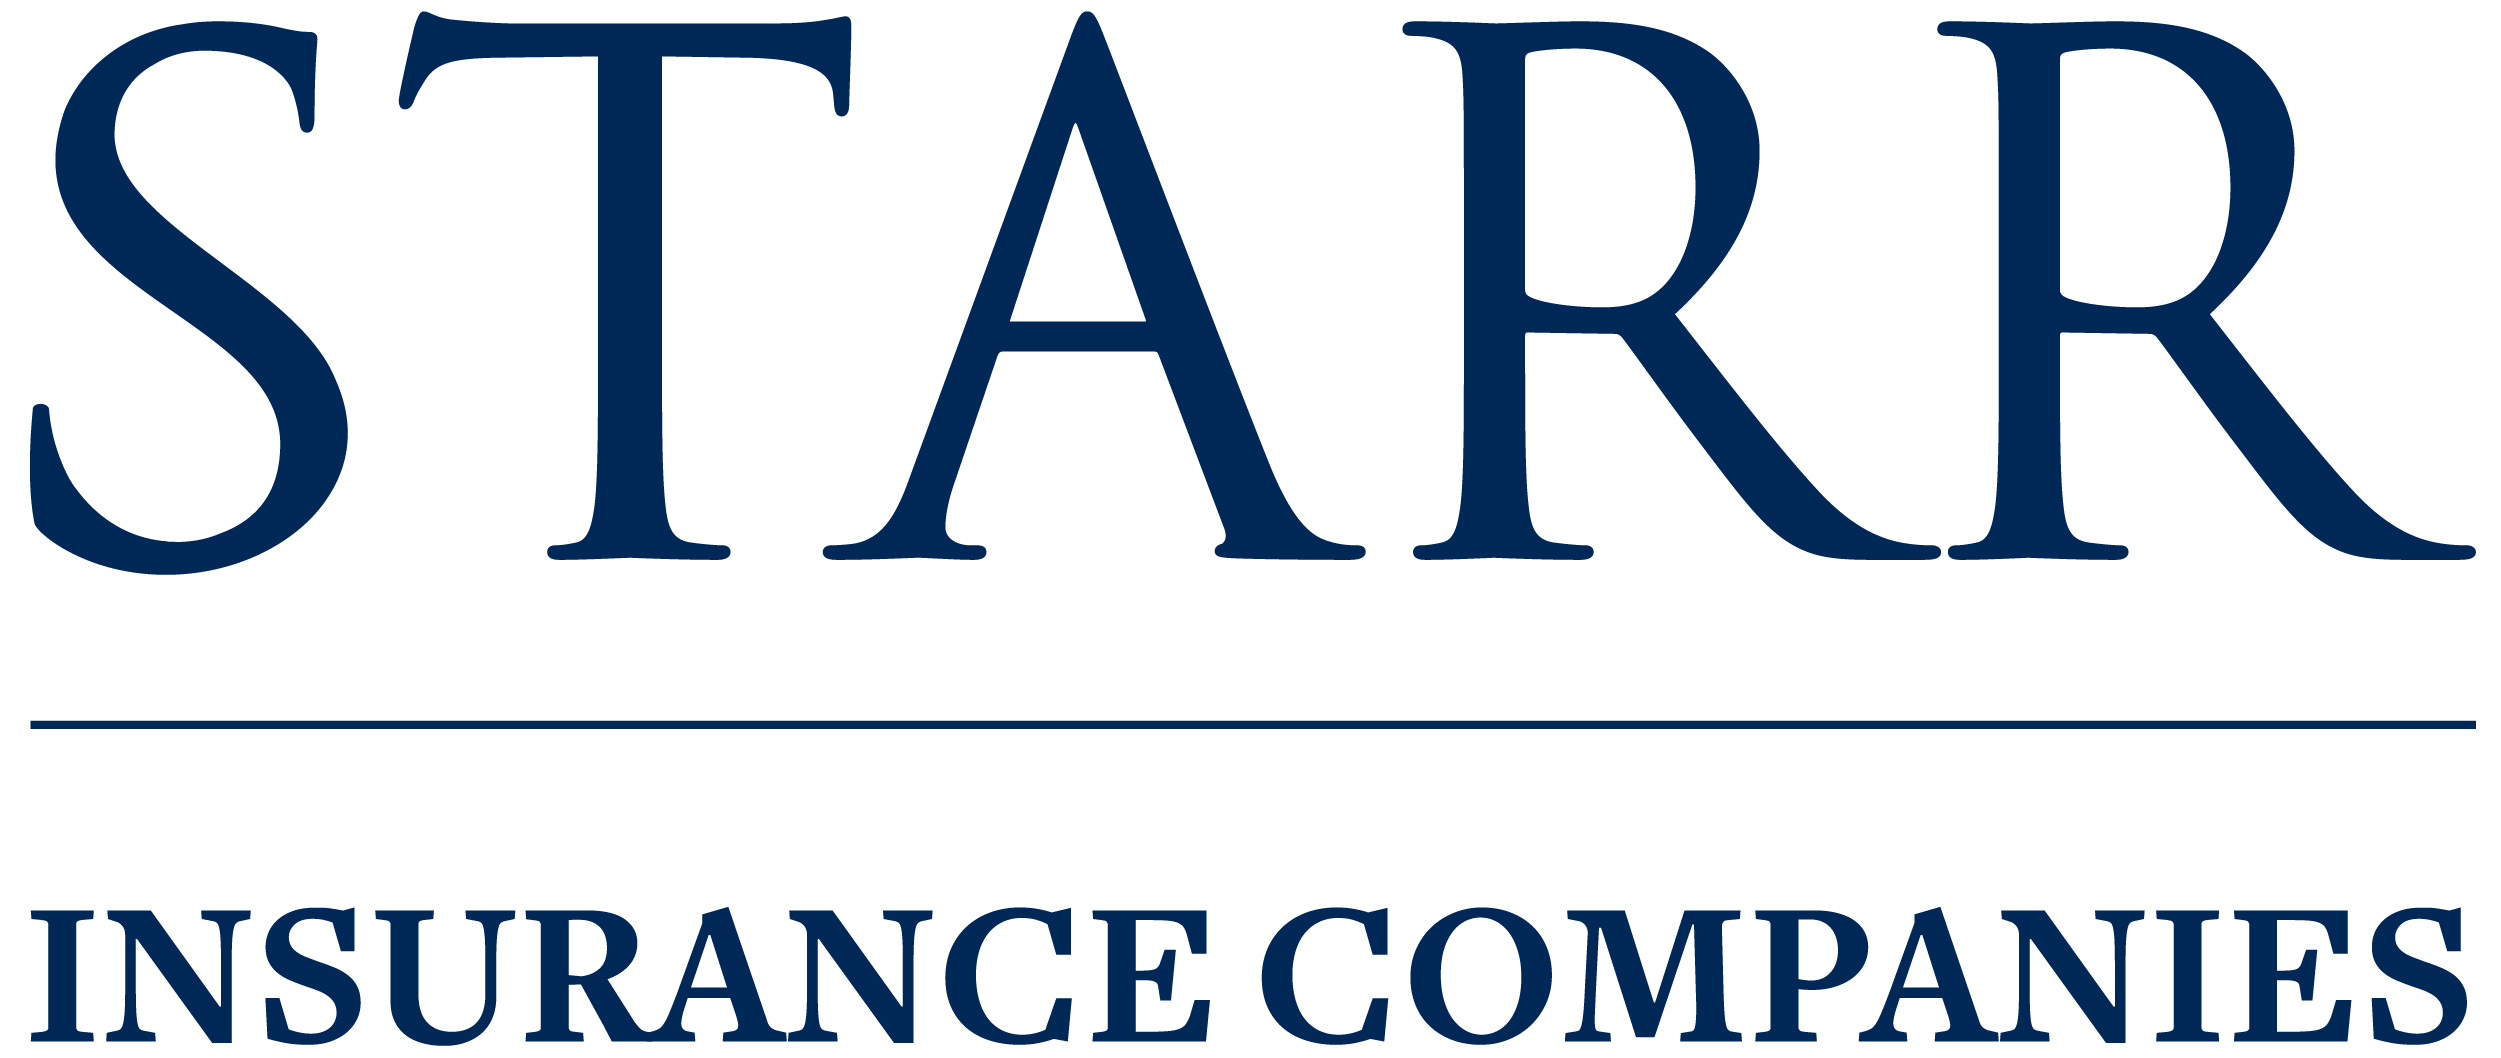 Starr Insurance Companies Appoints Carsten Nawrath As Aviation